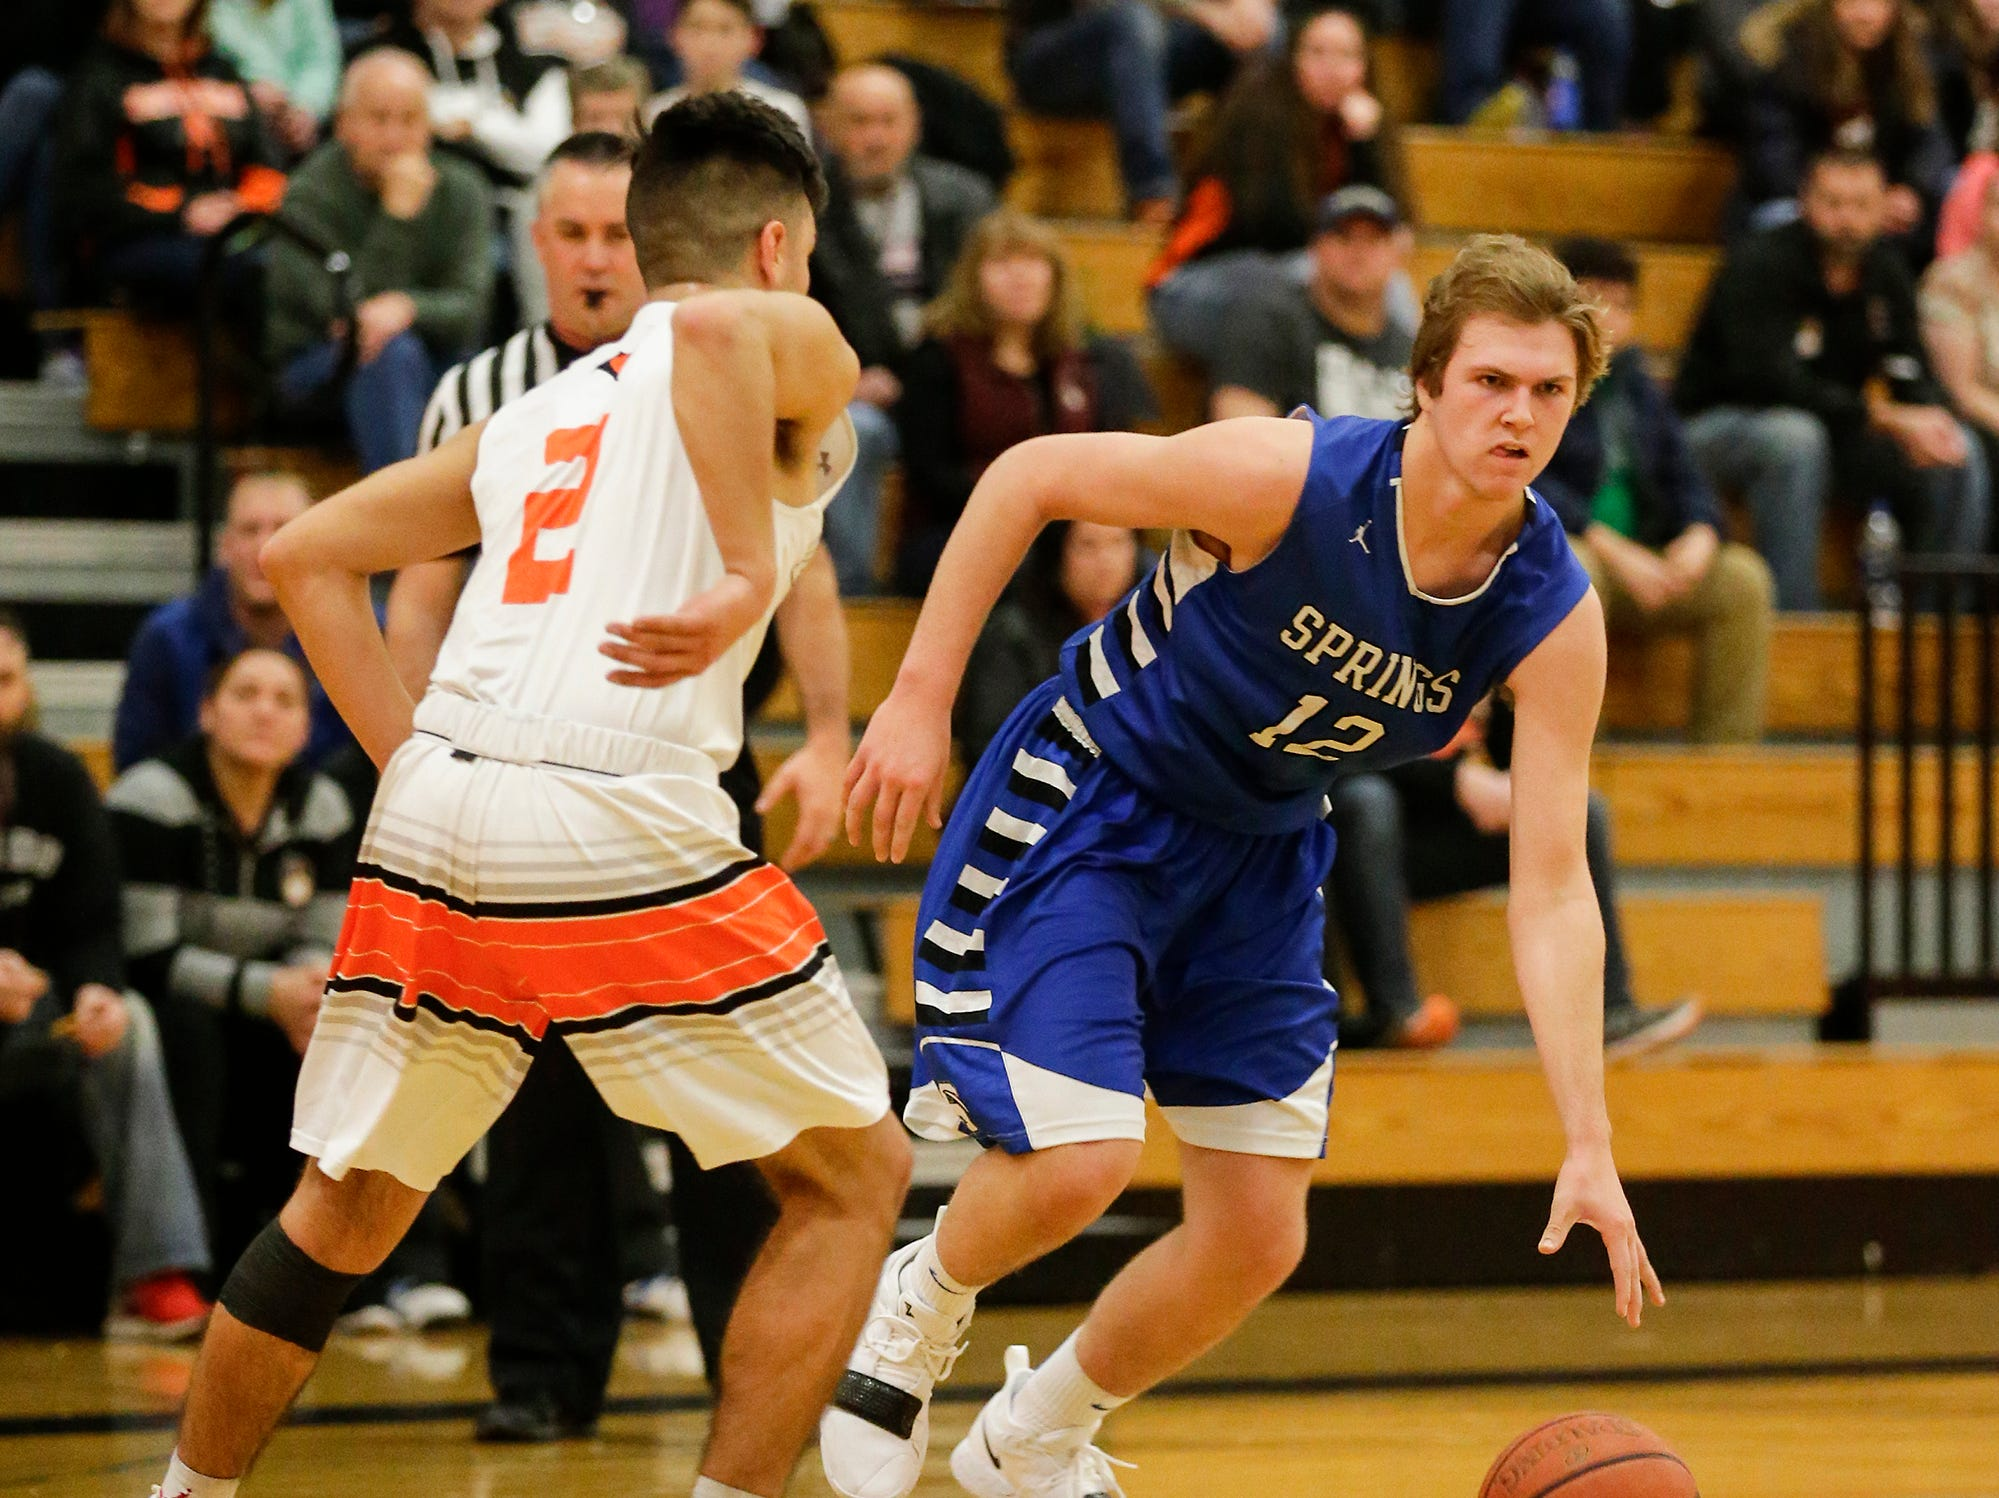 St. Mary's Springs Academy's boys basketball's Aiden Ottery dribbles the ball past North Fond du Lac High School's Tony Reyes during their game Friday, December 7, 2018 in North Fond du Lac, Wisconsin.